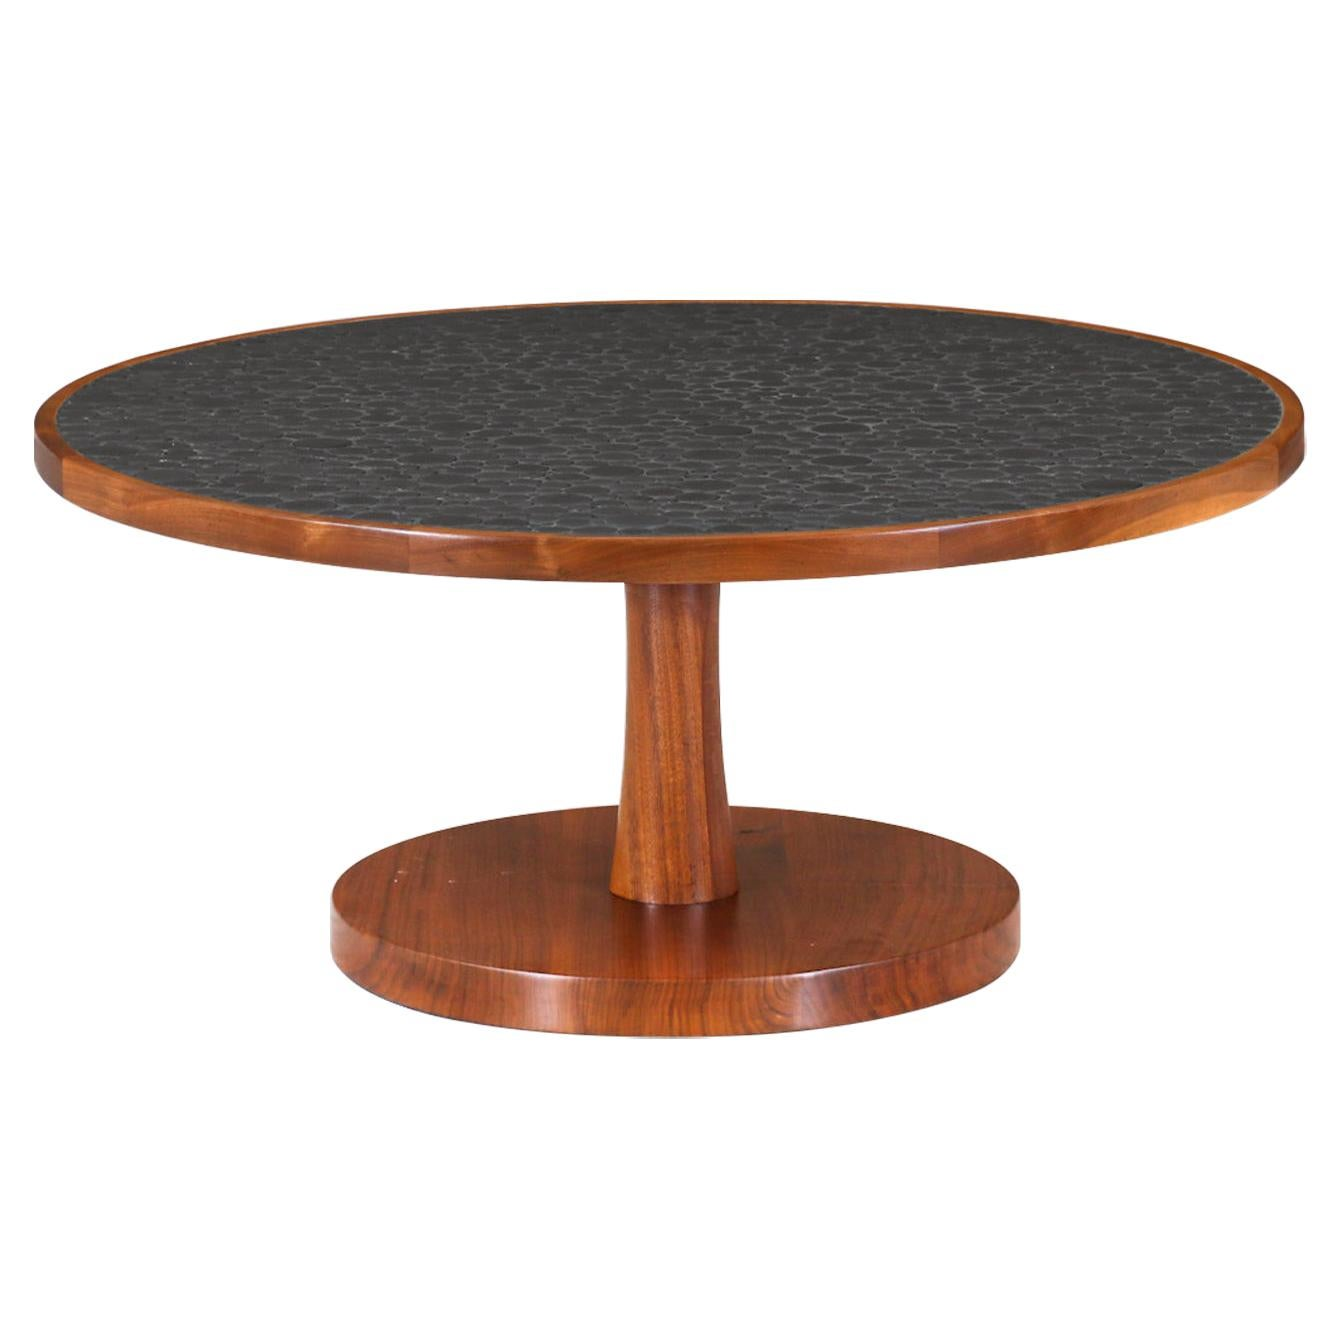 Gordon & Jane Martz Coffee Table with Ceramic Coin Inlay Top for Marshall Studio